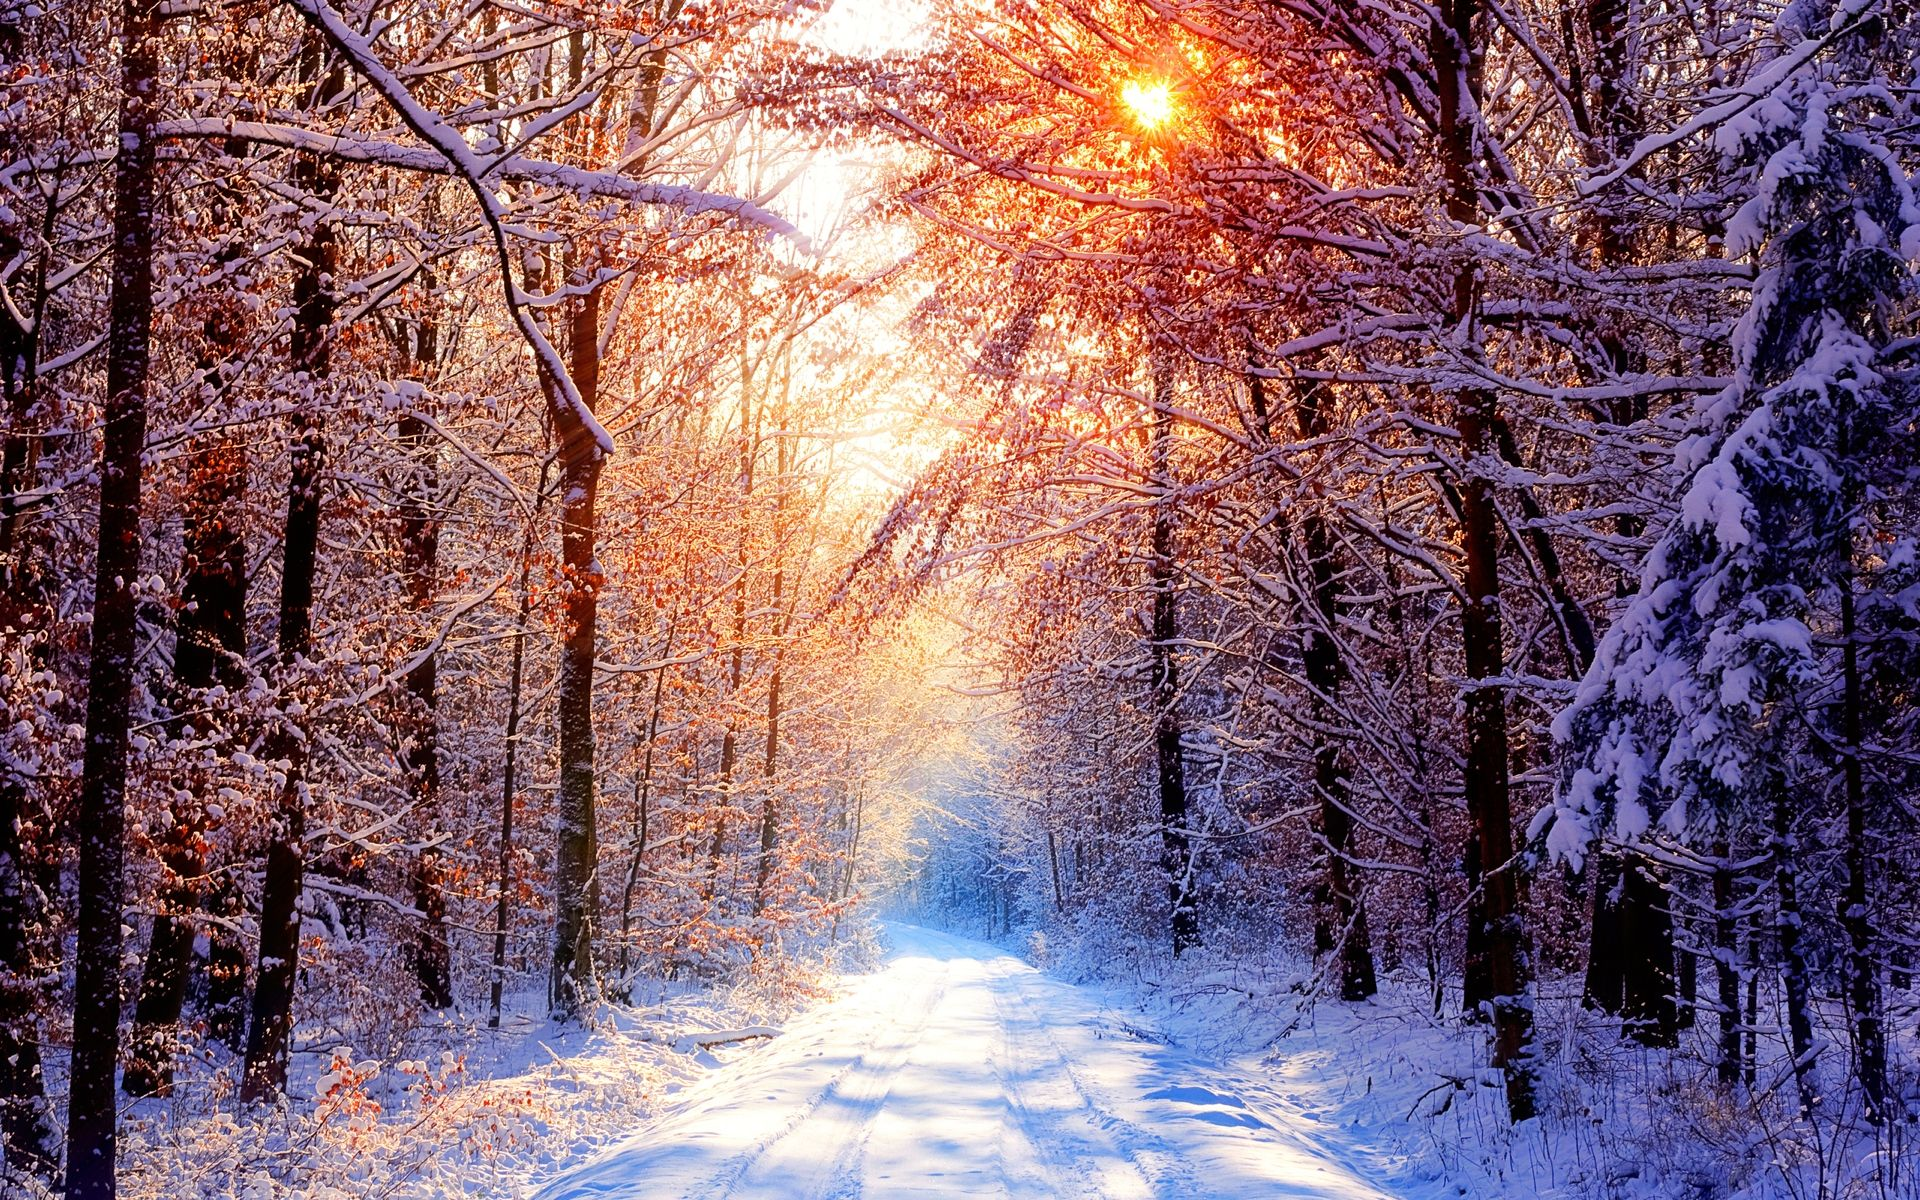 Pin By Isabel Marques On Um Dia Vou Winter Facebook Covers Beautiful Winter Scenes Winter Wallpaper